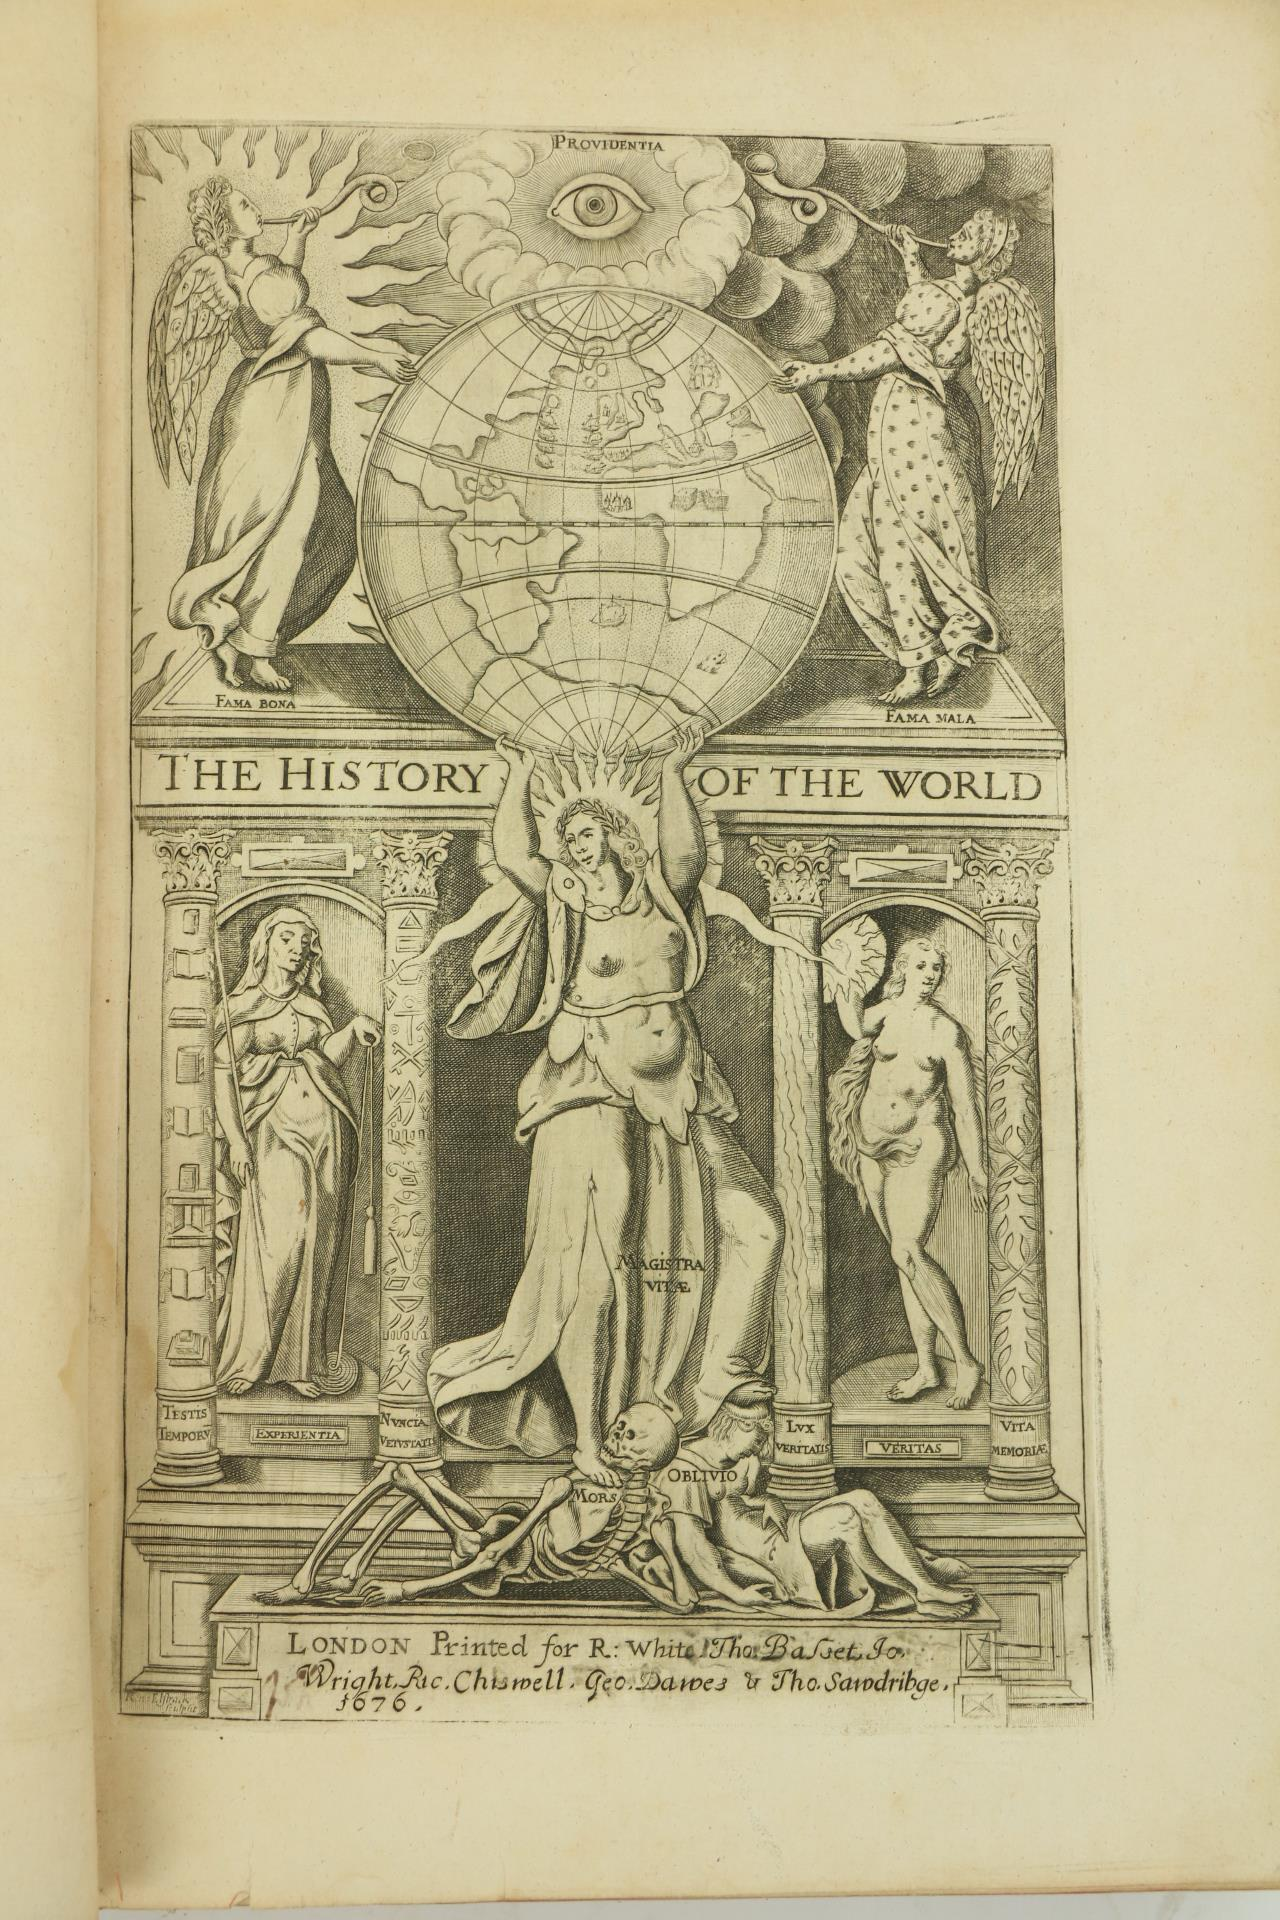 Raleighÿ(Sir Walter)ÿThe History of the World, In Five Books. Lg. folio Lond. (For Robert White,